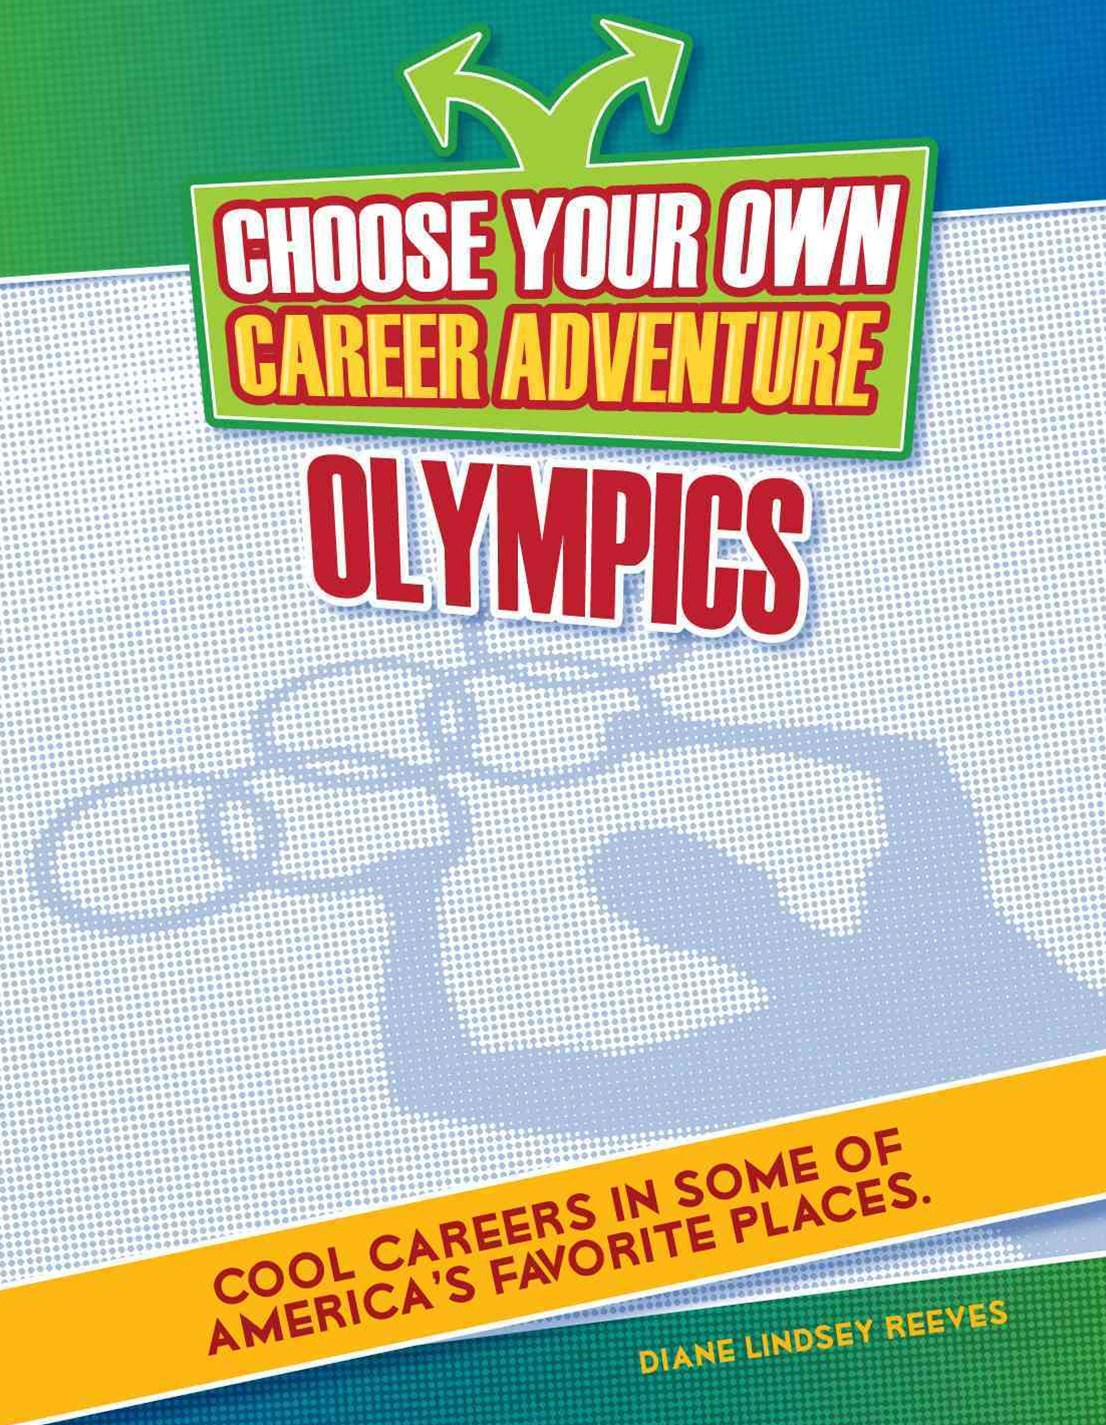 Choose Your Own Career Adventure at the Olympics